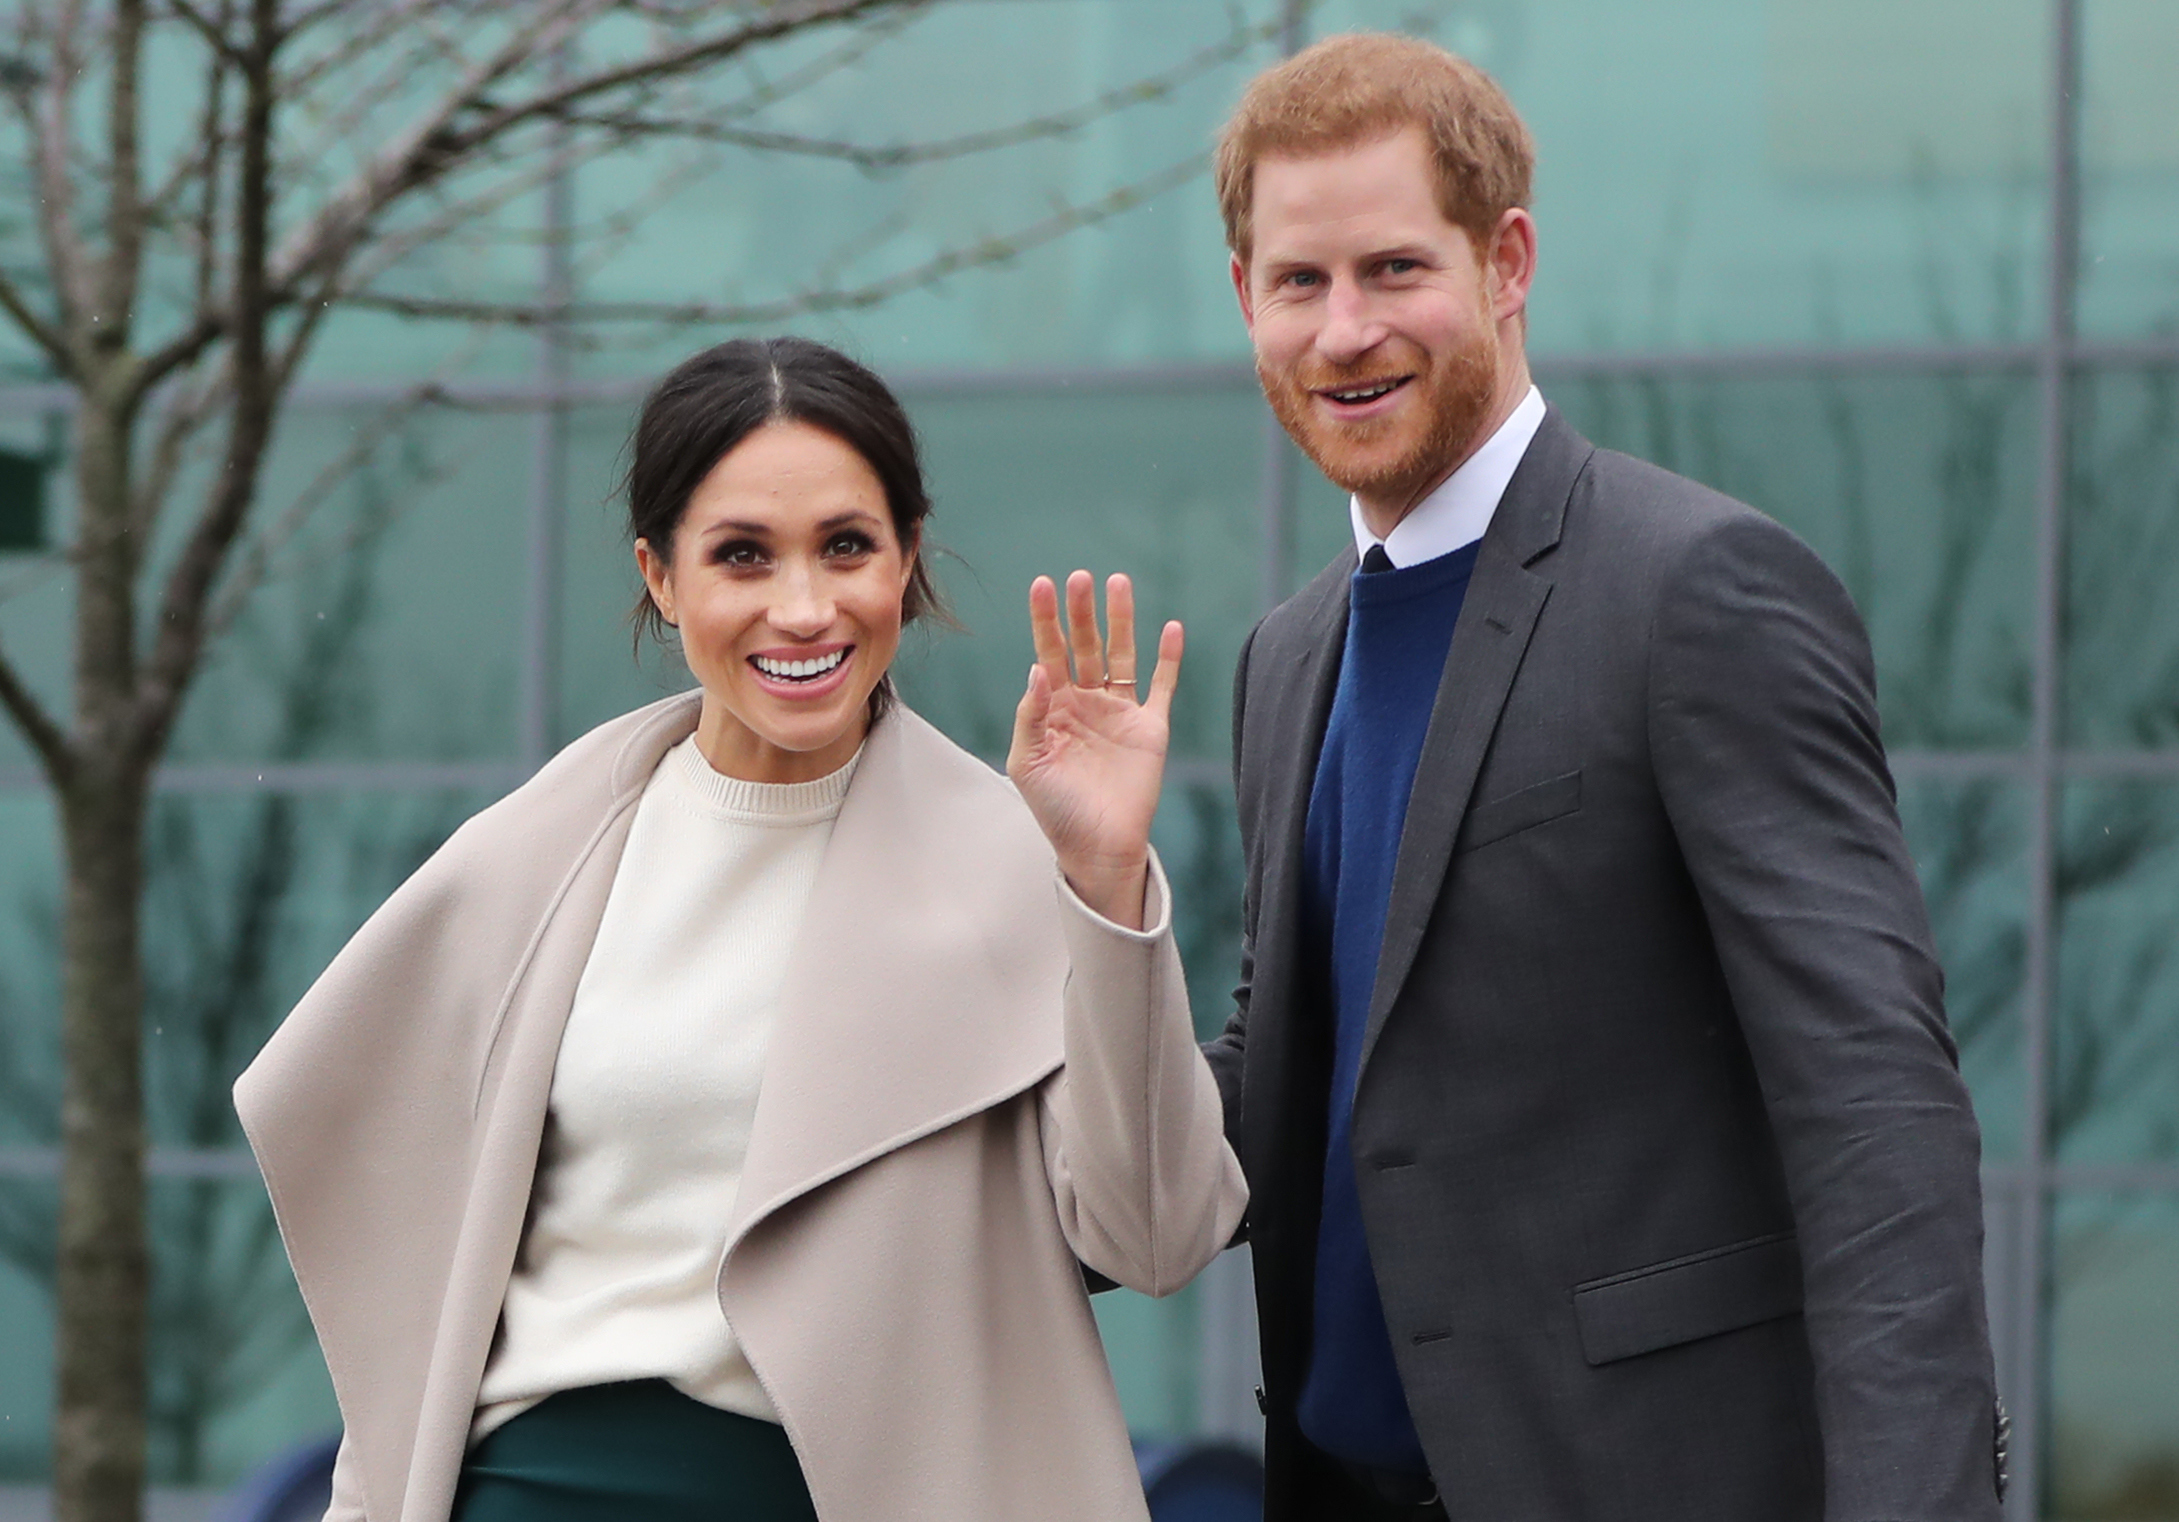 BIG DAY: The weather is set to be pleasant for the anticipated Royal Wedding on Saturday